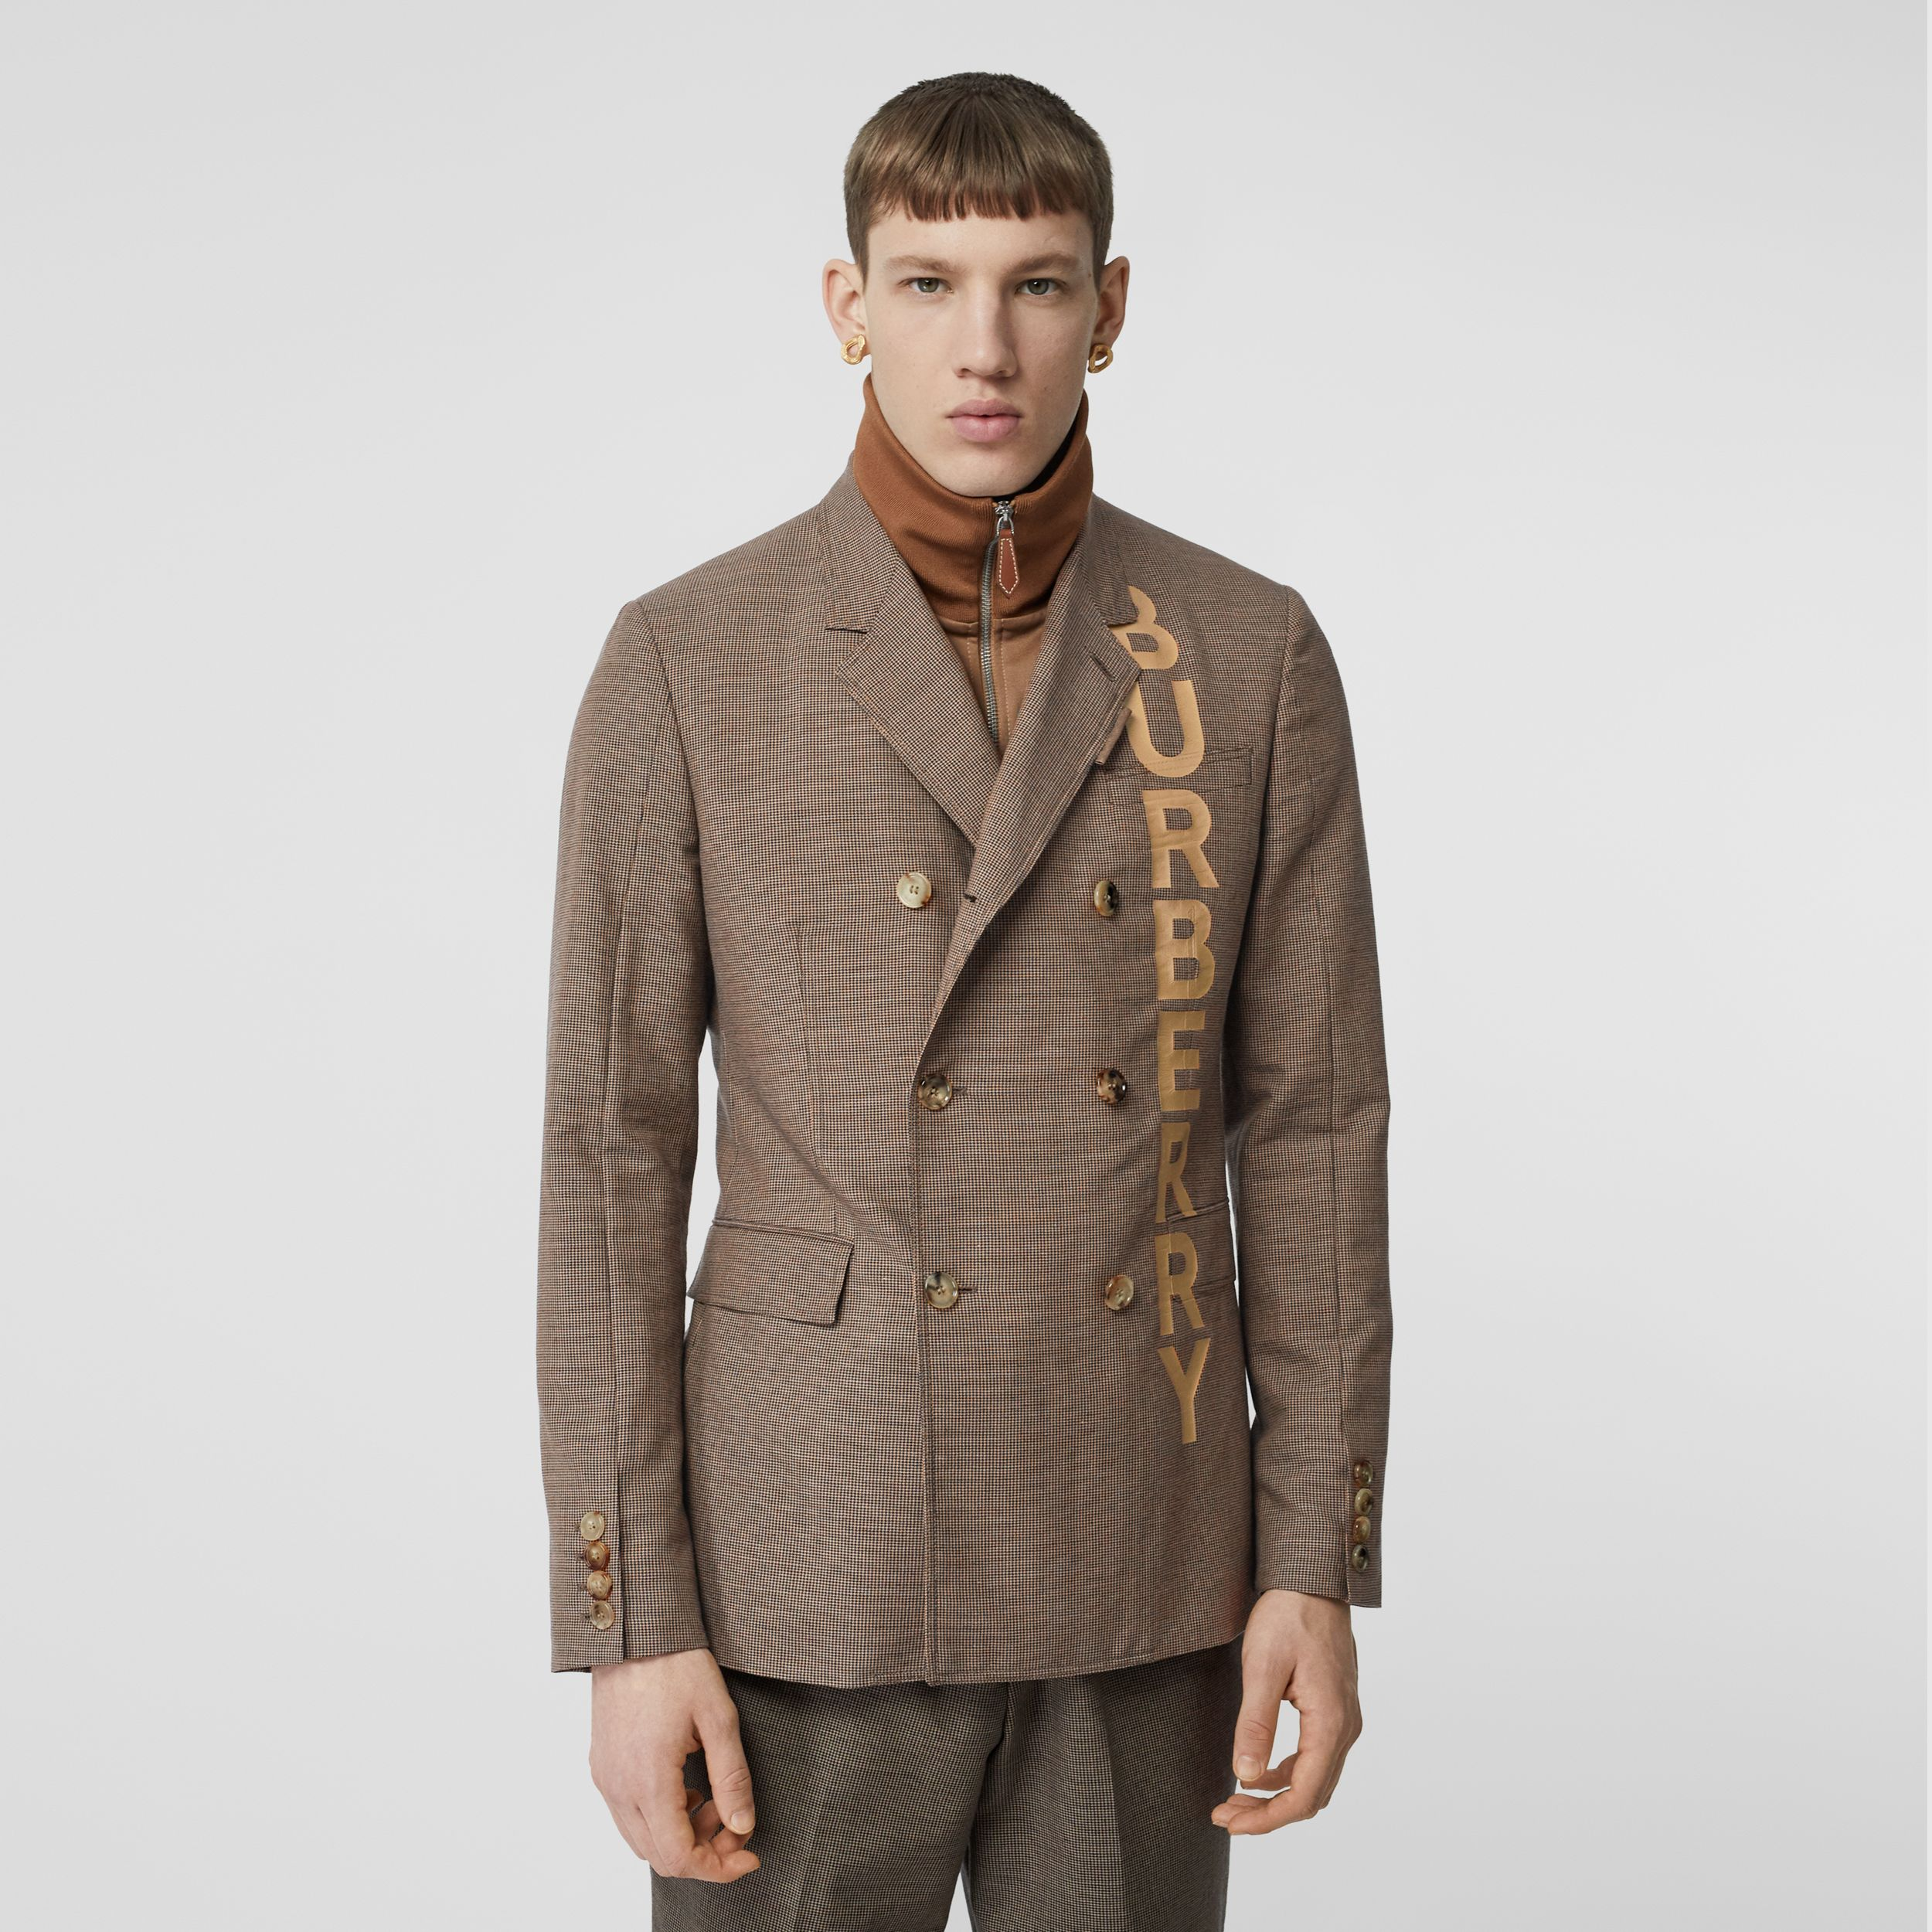 Slim Fit Logo Print Cotton Wool Blend Tailored Jacket in Beige - Men | Burberry United Kingdom - 1